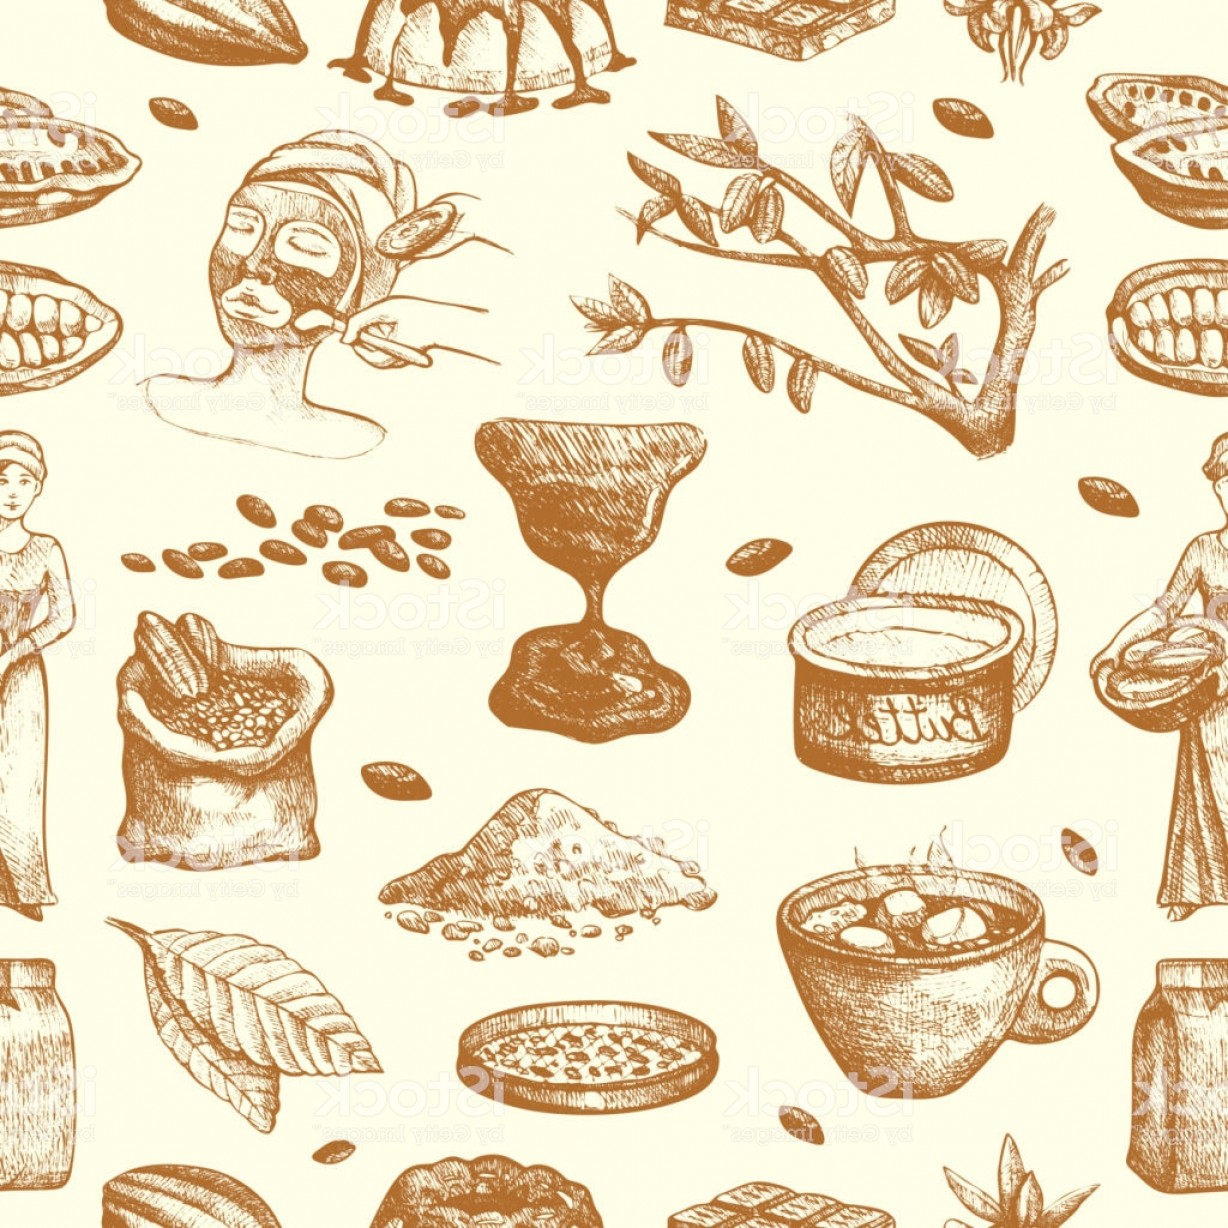 Chocolate Vector Plant: Vector Cocoa Products Hand Drawn Sketch Doodle Food Chocolate Sweet Cacao Gm